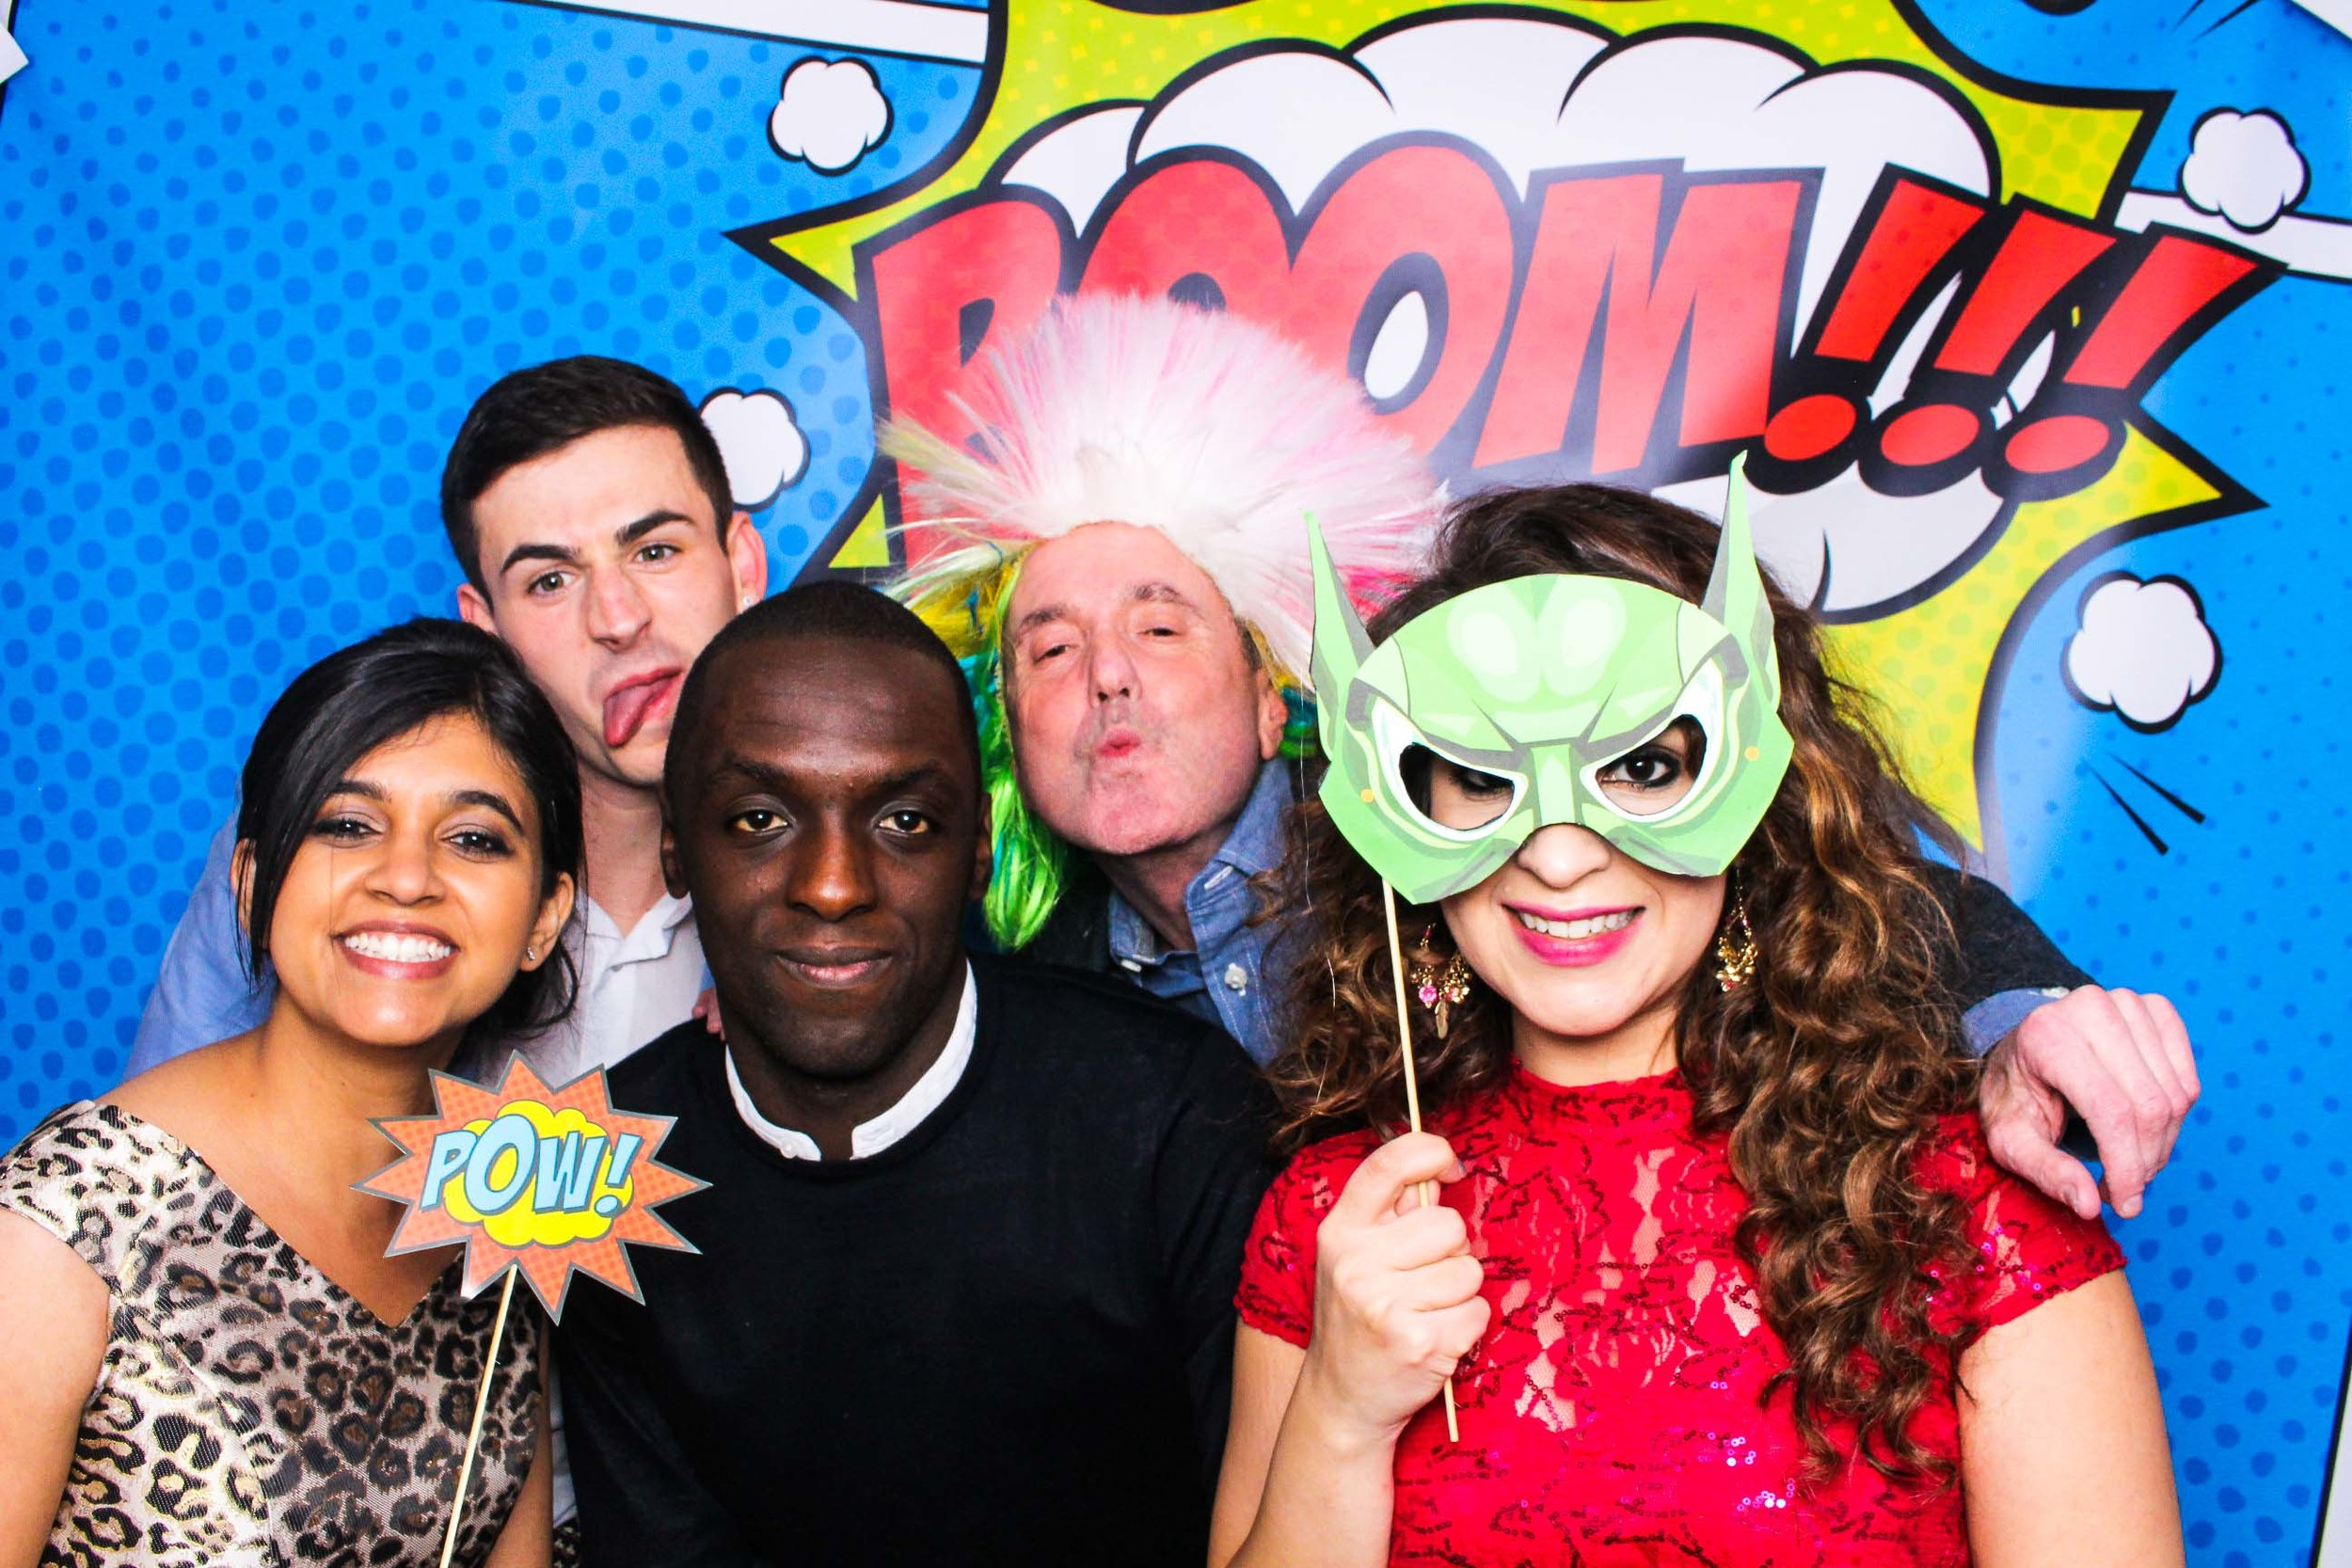 Fotoauto Photo Booth Hire - Shop Direct-196.jpg